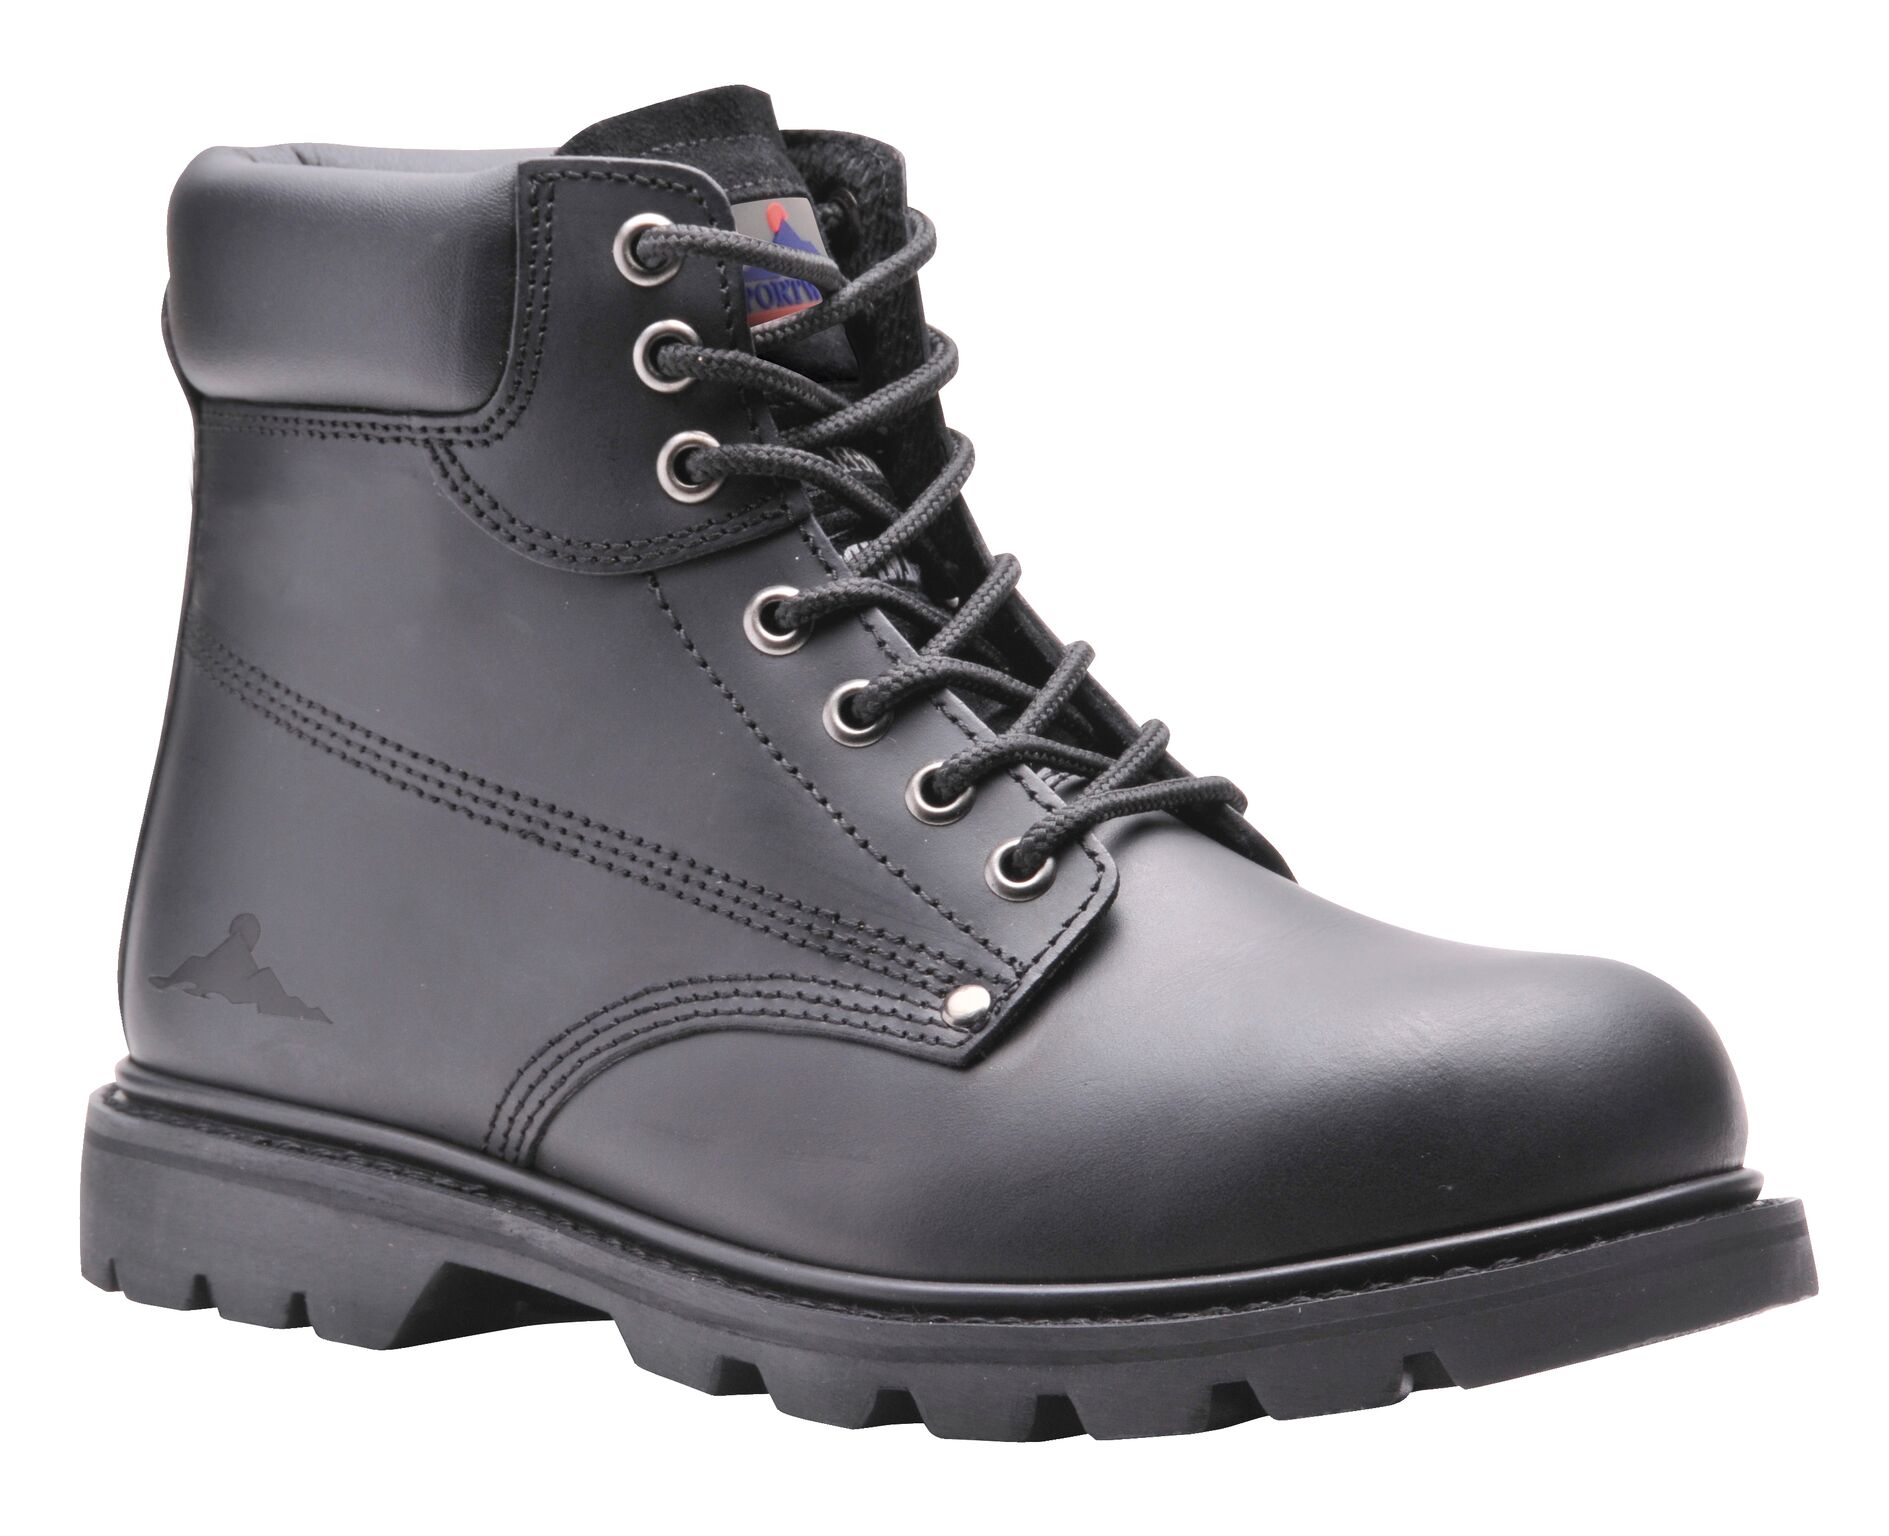 Steelite Welted Safety Boot - Personal Protection ...